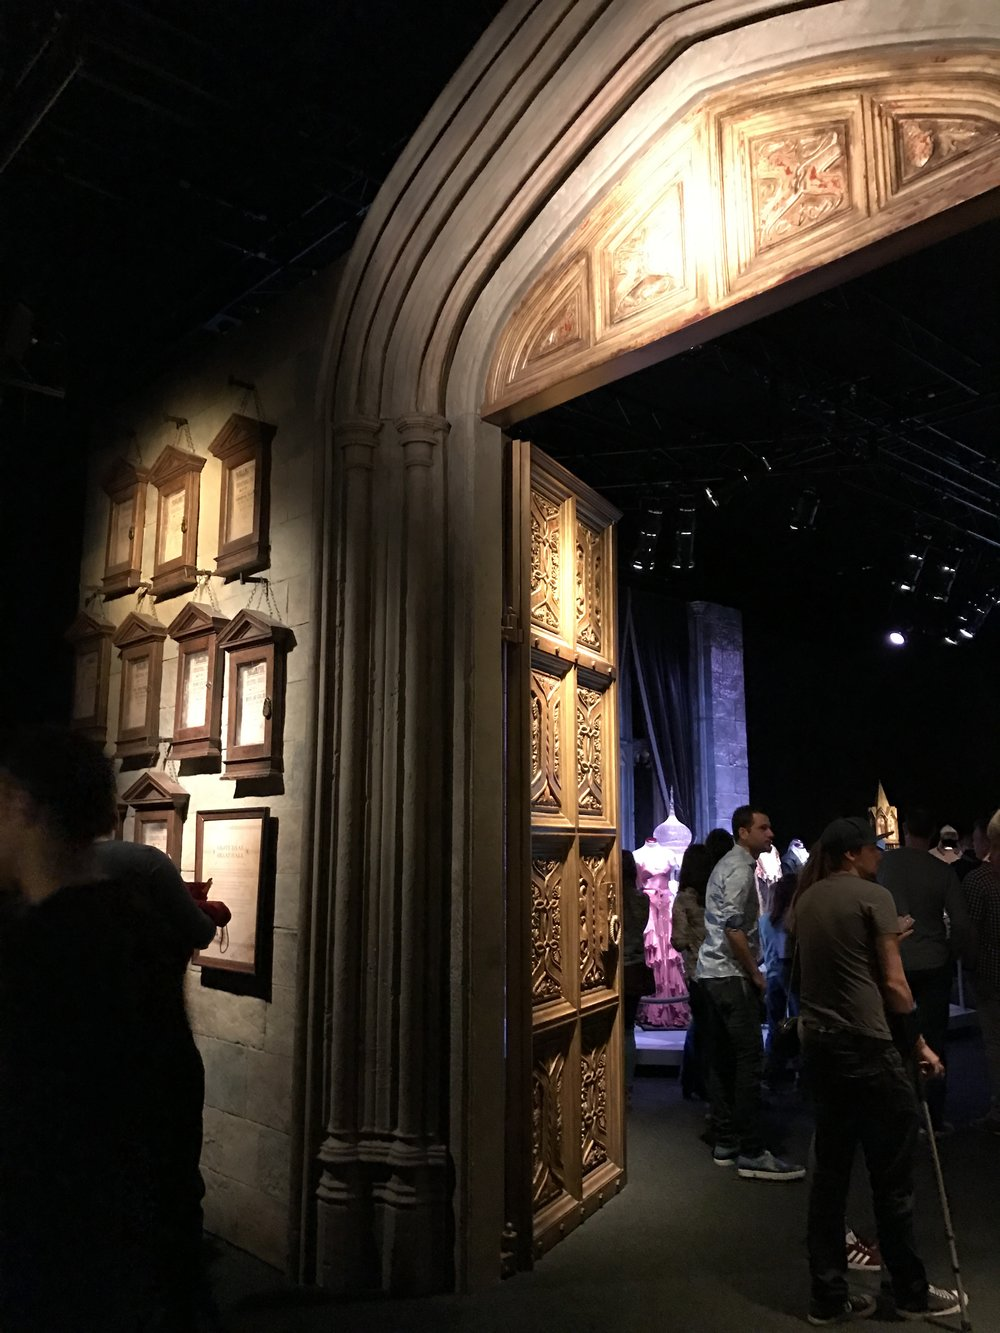 Harry Potter Expo, De Museumpodcast